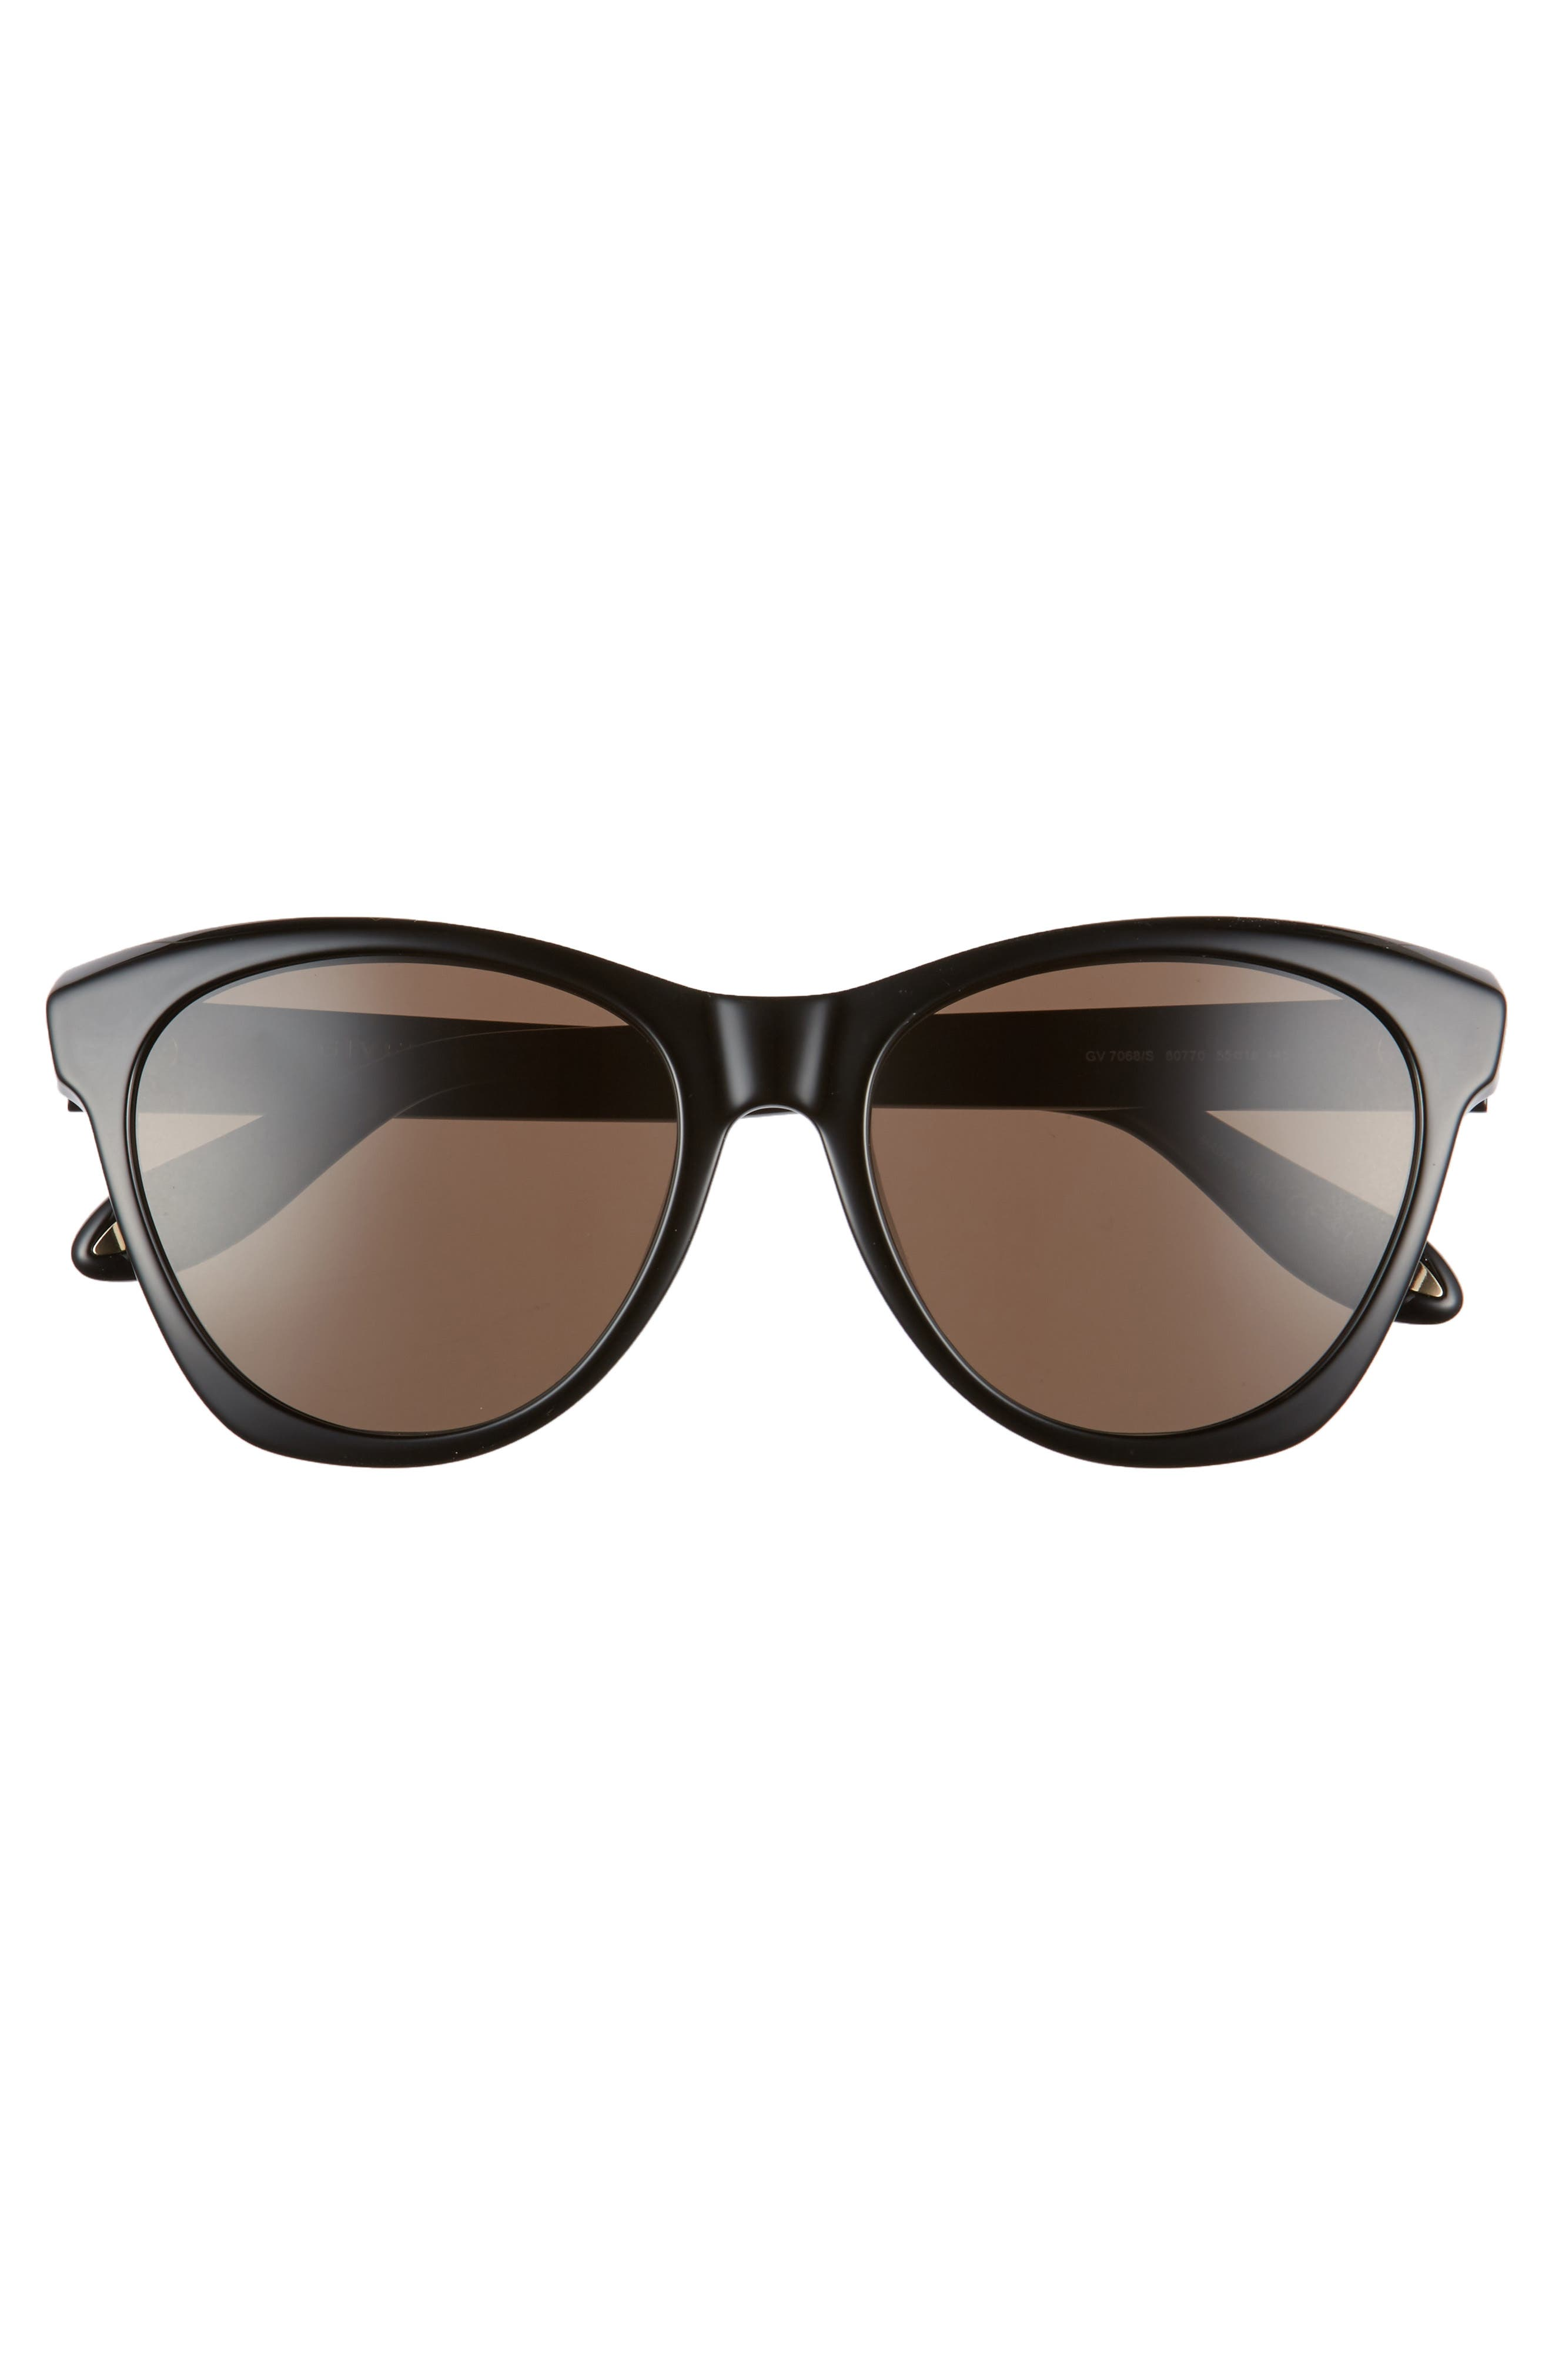 55mm Cat Eye Sunglasses,                             Alternate thumbnail 3, color,                             Black